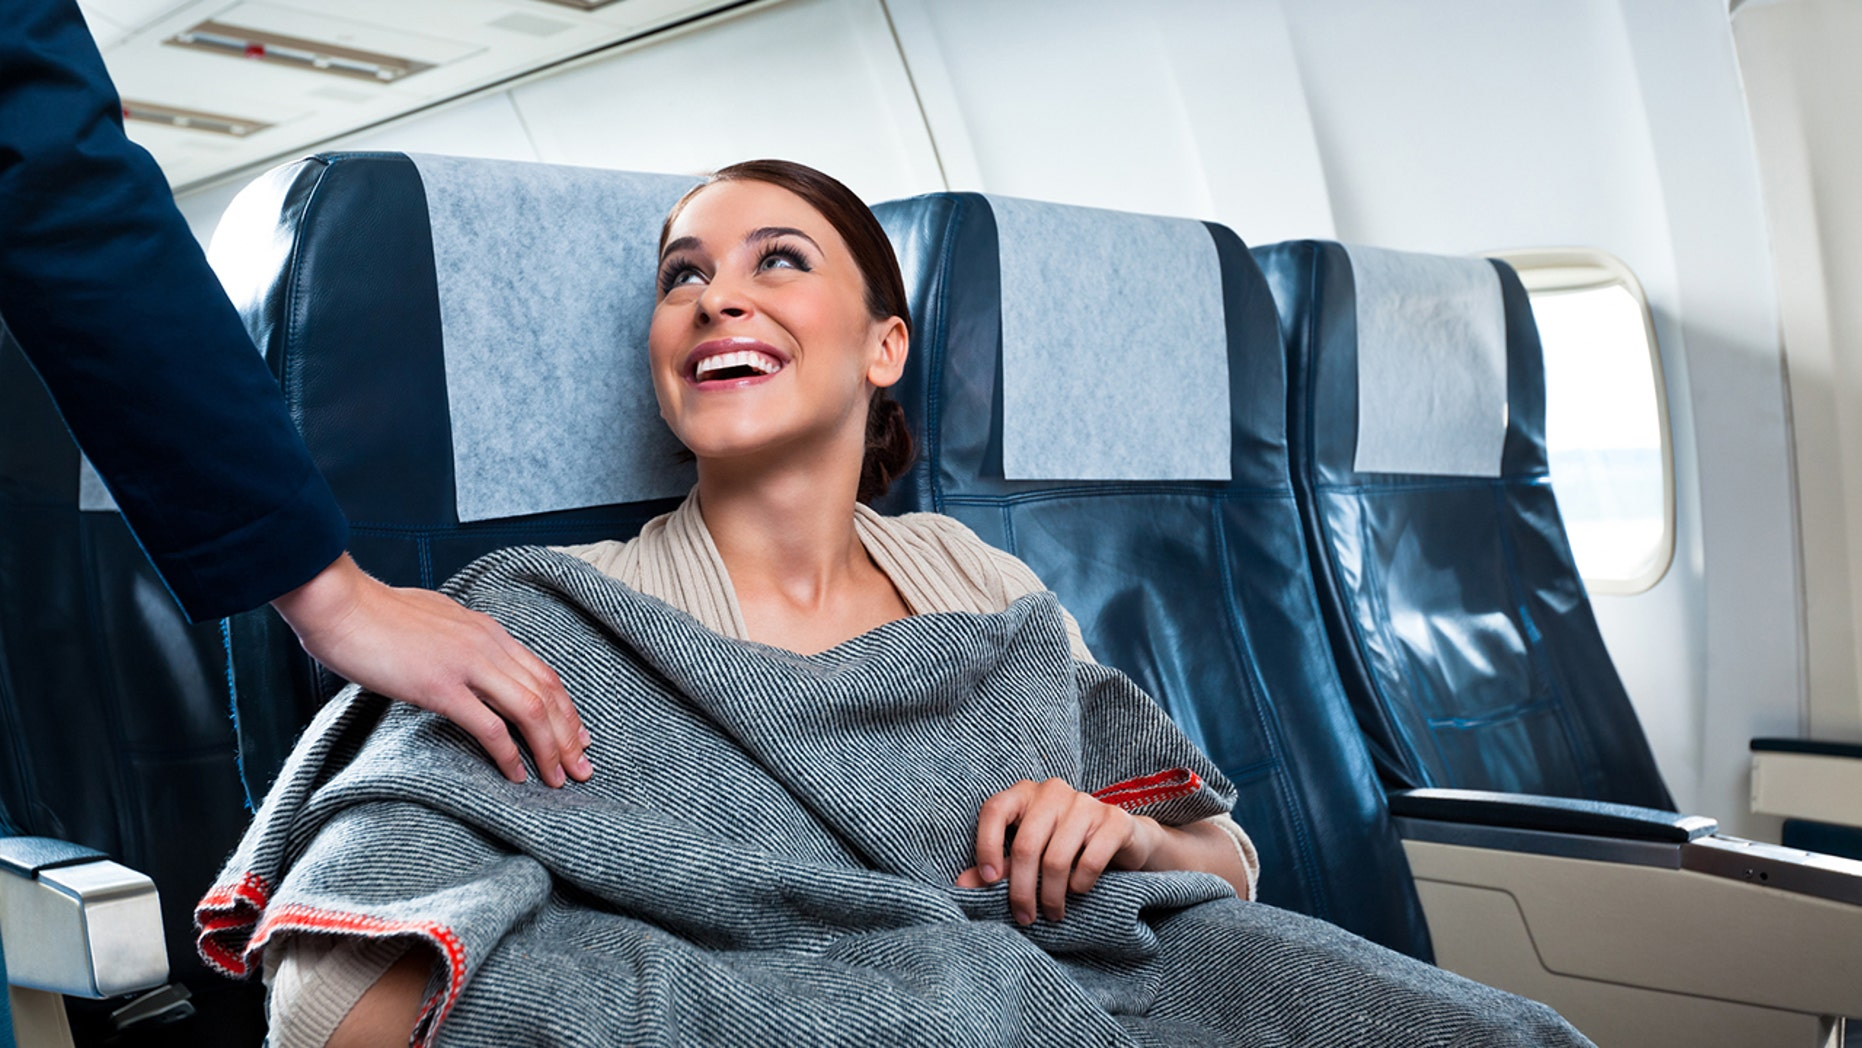 Airlines Have A Huge Problem With Passengers Stealing